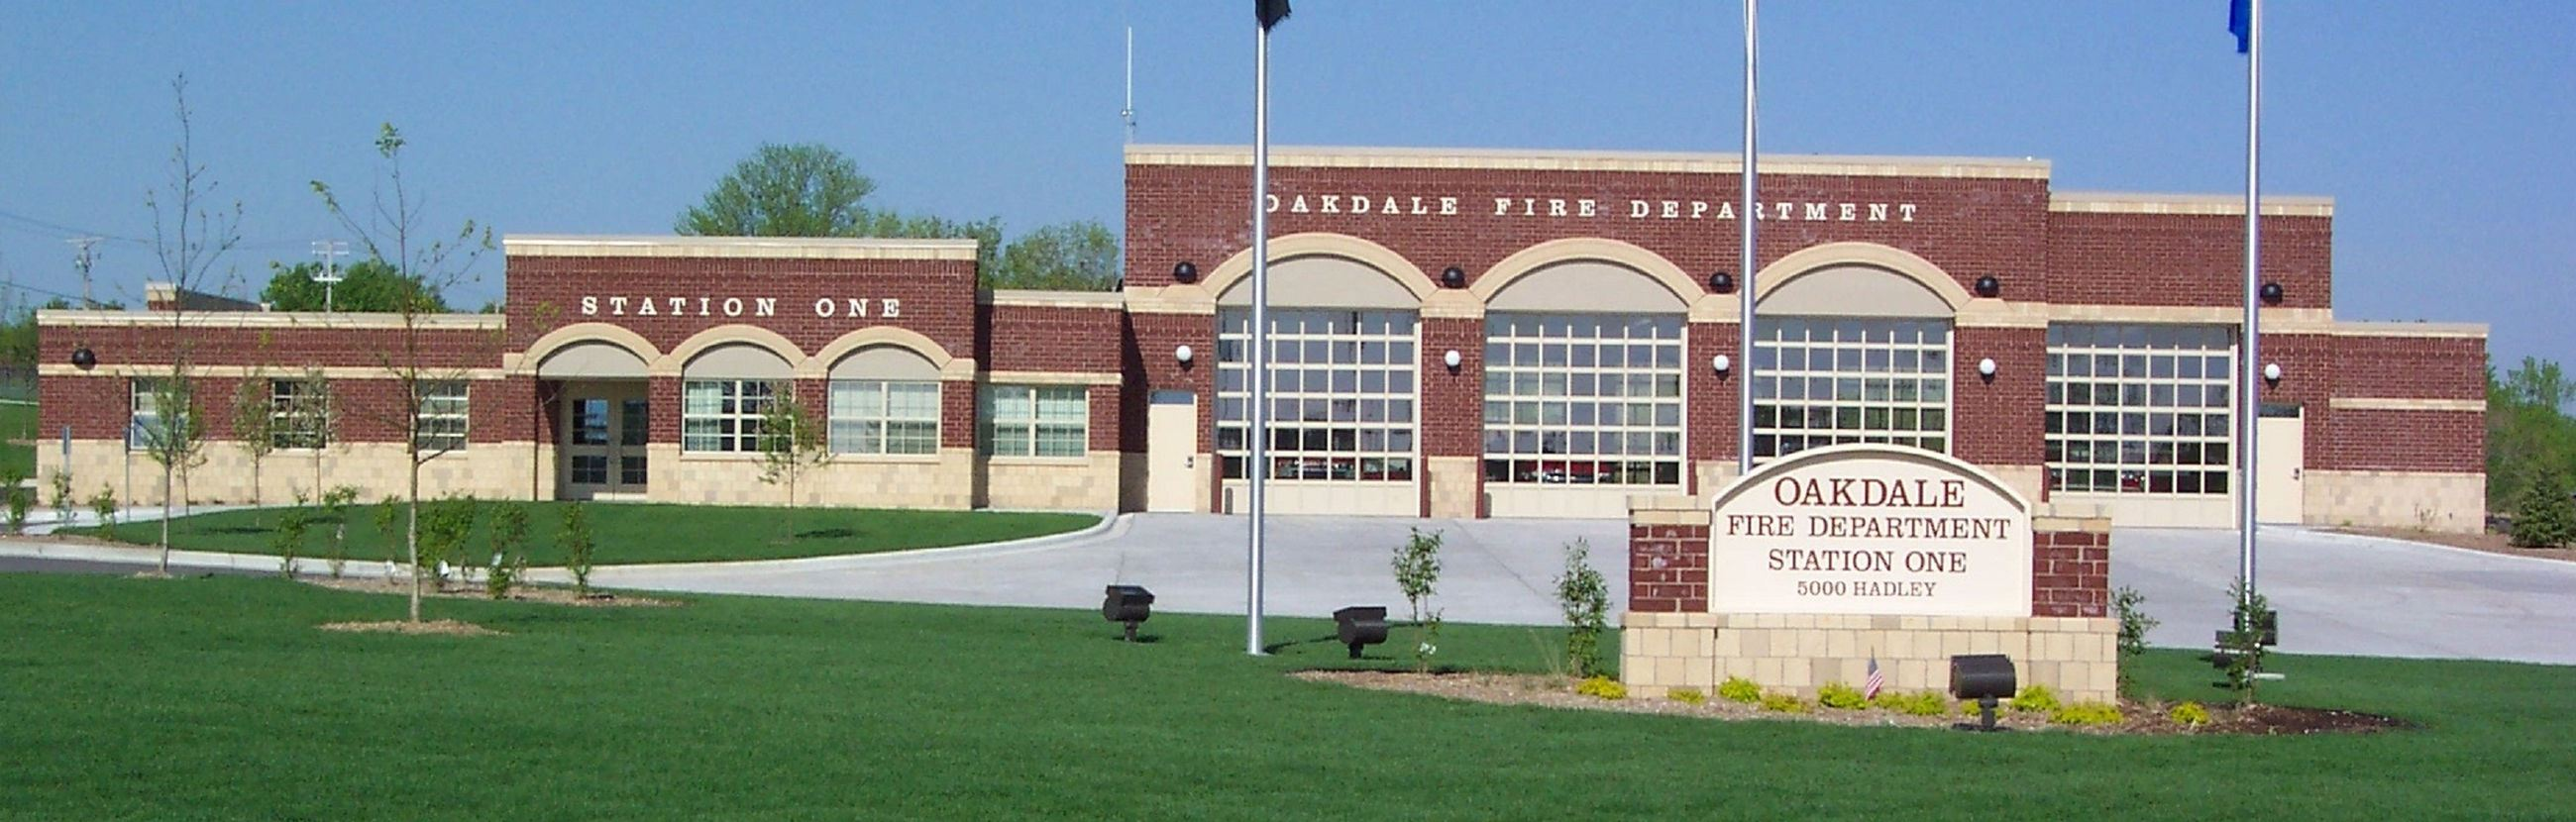 Oakdale Fire Station Headquarters located at 5000 Hadley Avenue